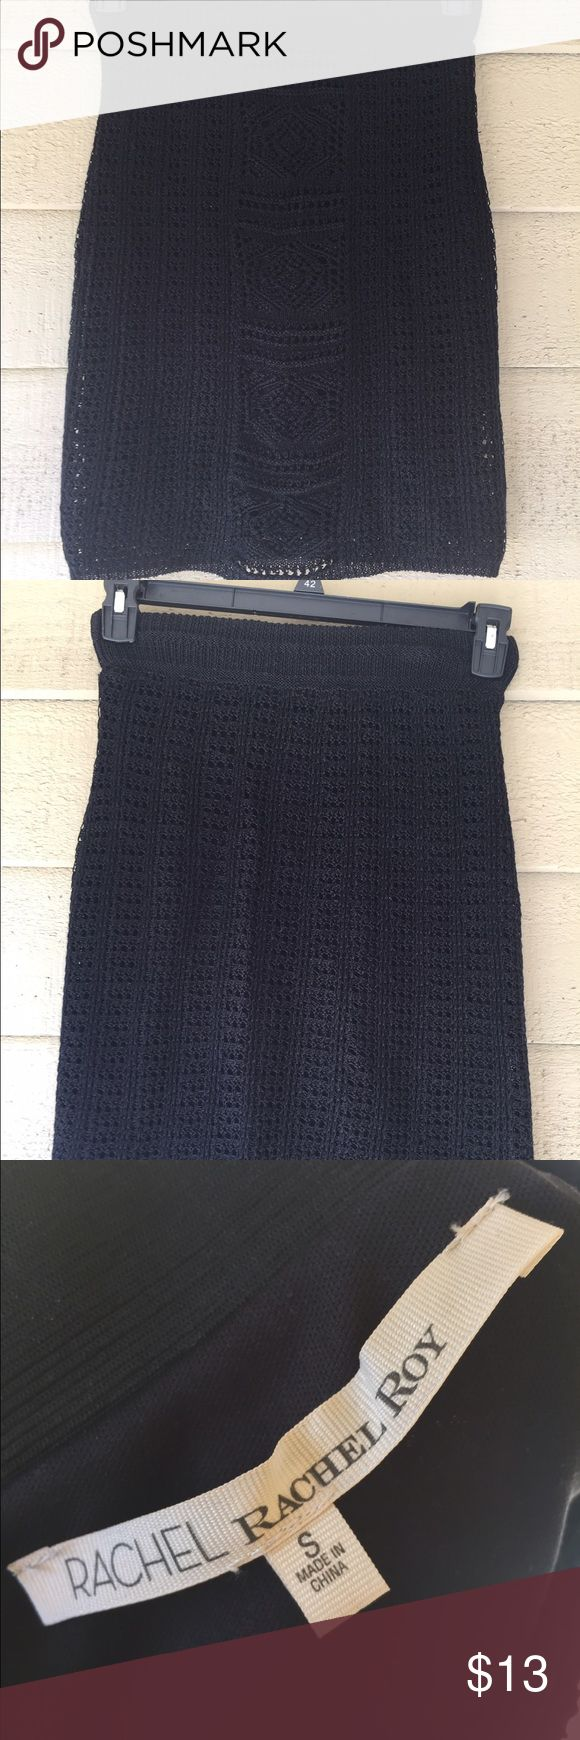 Rachel Roy Crochet Mini Skirt Body Con Amazing Rachel Roy mini skirt features intricate crochet overlay! Fits much like her body con skirts. Thank you for viewing this listing and don't forget to check out other great finds in my closet. Comments welcome! RACHEL Rachel Roy Skirts Mini